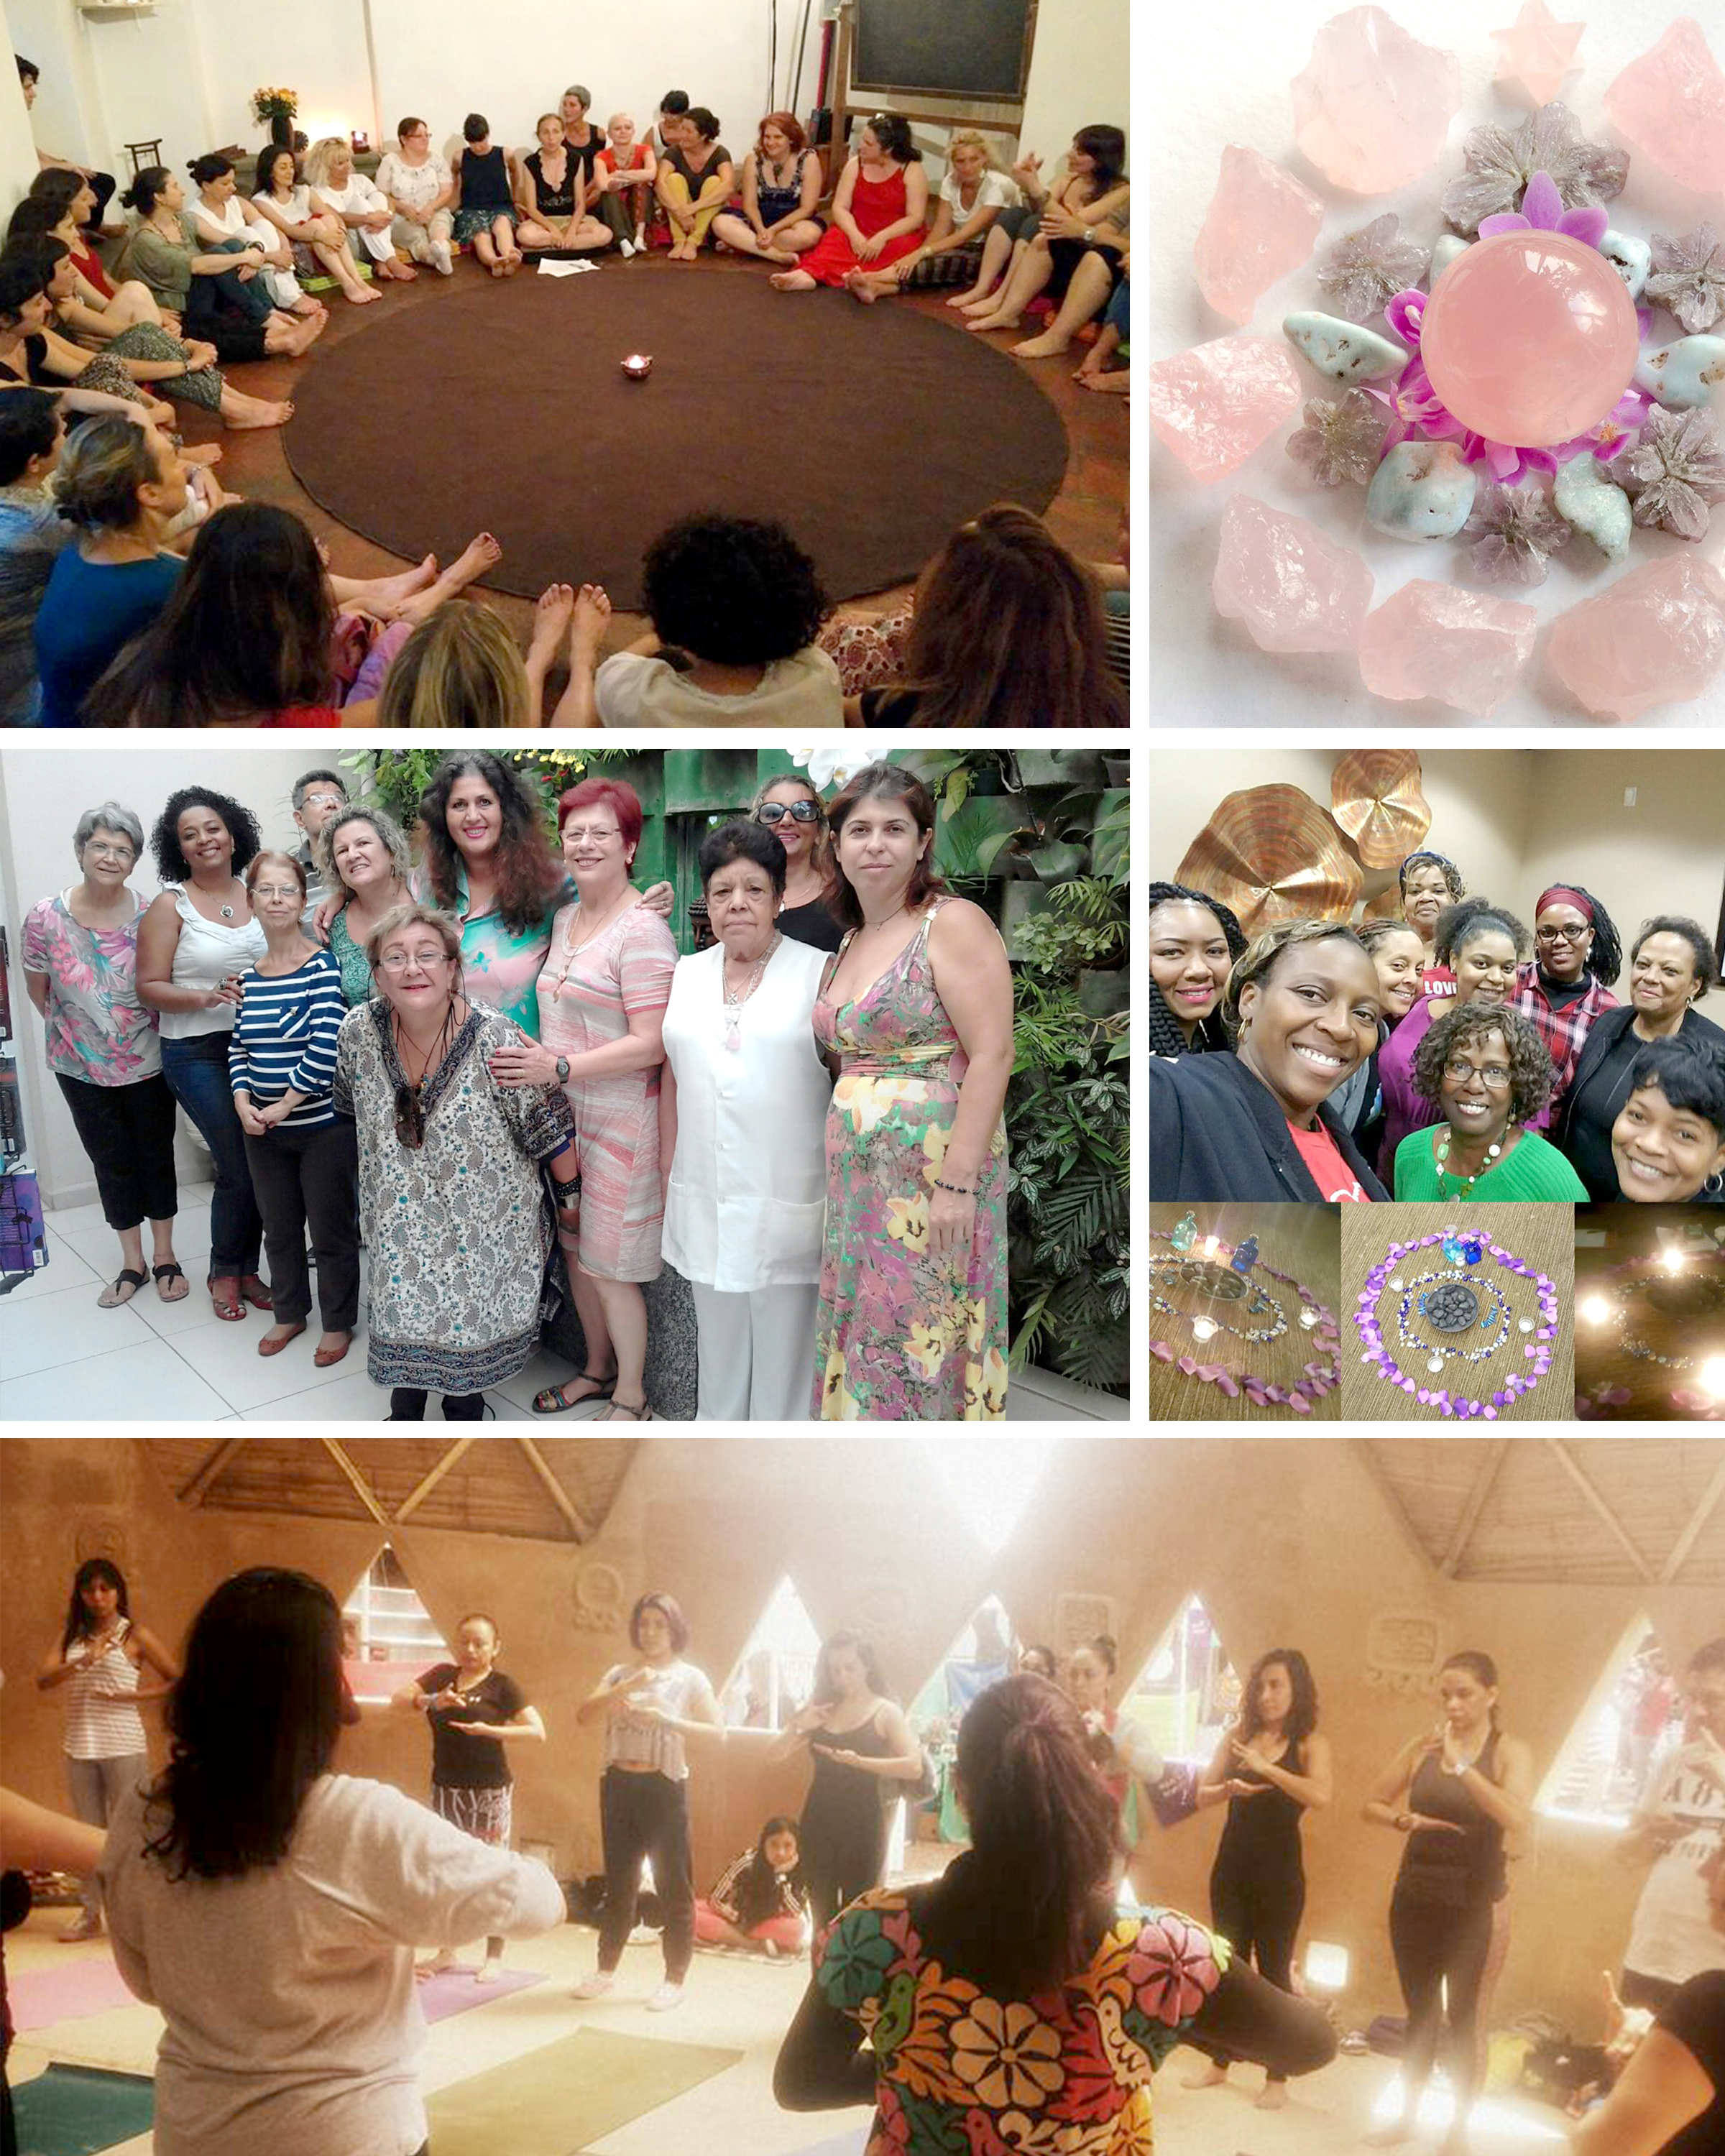 What is a sister circle? - For ages, women have been aligning with the moon to regulate their mind, body and spirit - to release old emotions, share with sisters, and manifest their hearts' true desires.These intimate online gatherings are the perfect way to align yourself with the power of the moon, release what no longer serves and plant intentions for the following cycle.